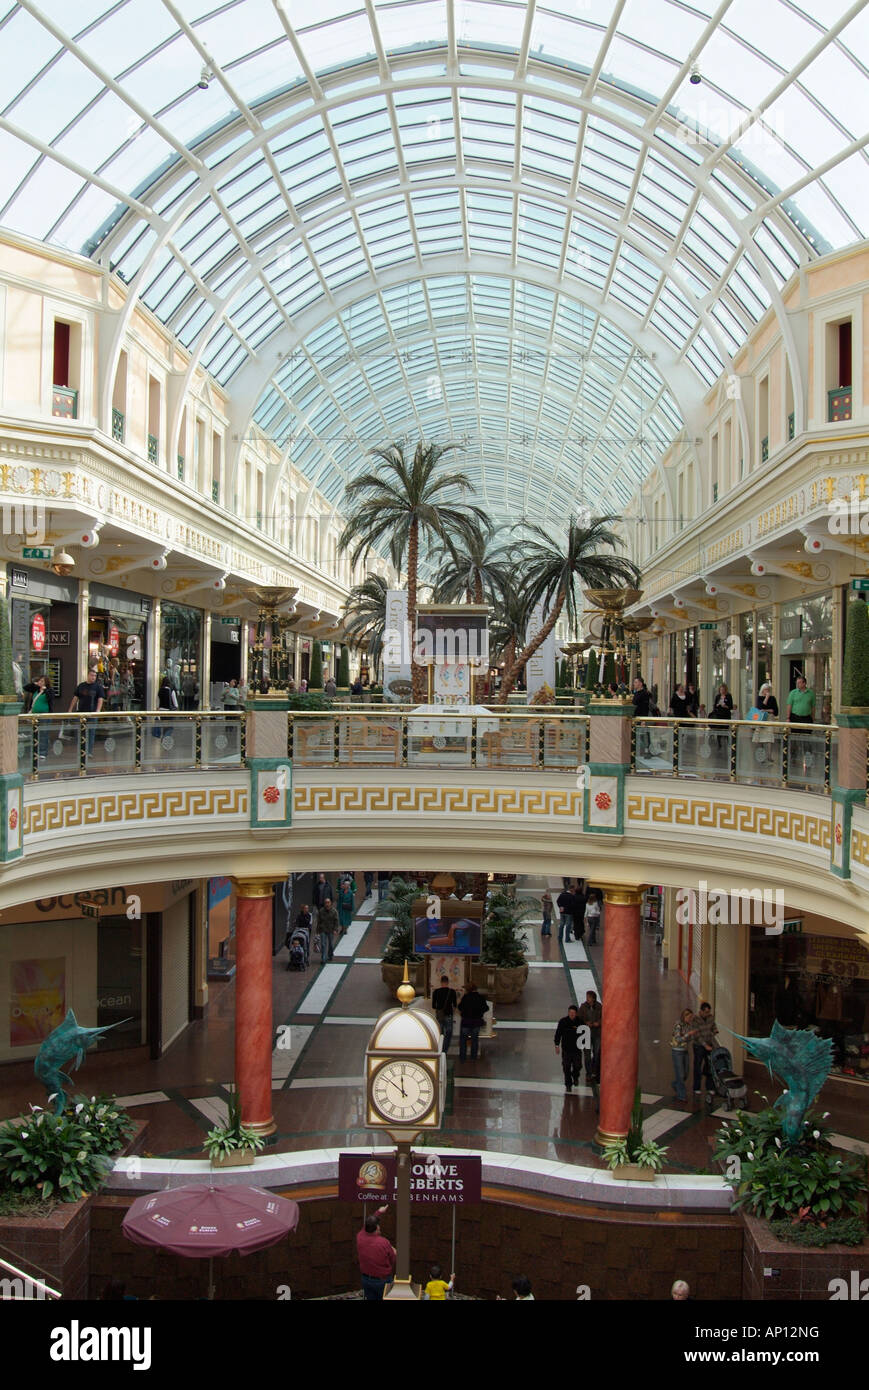 Stock Photo   Trafford Centre Manchester Main Concourse Mall Glass Roof  Palm Tree Clock Elevated Balcony Inside Enclosed Indoor Interior UK